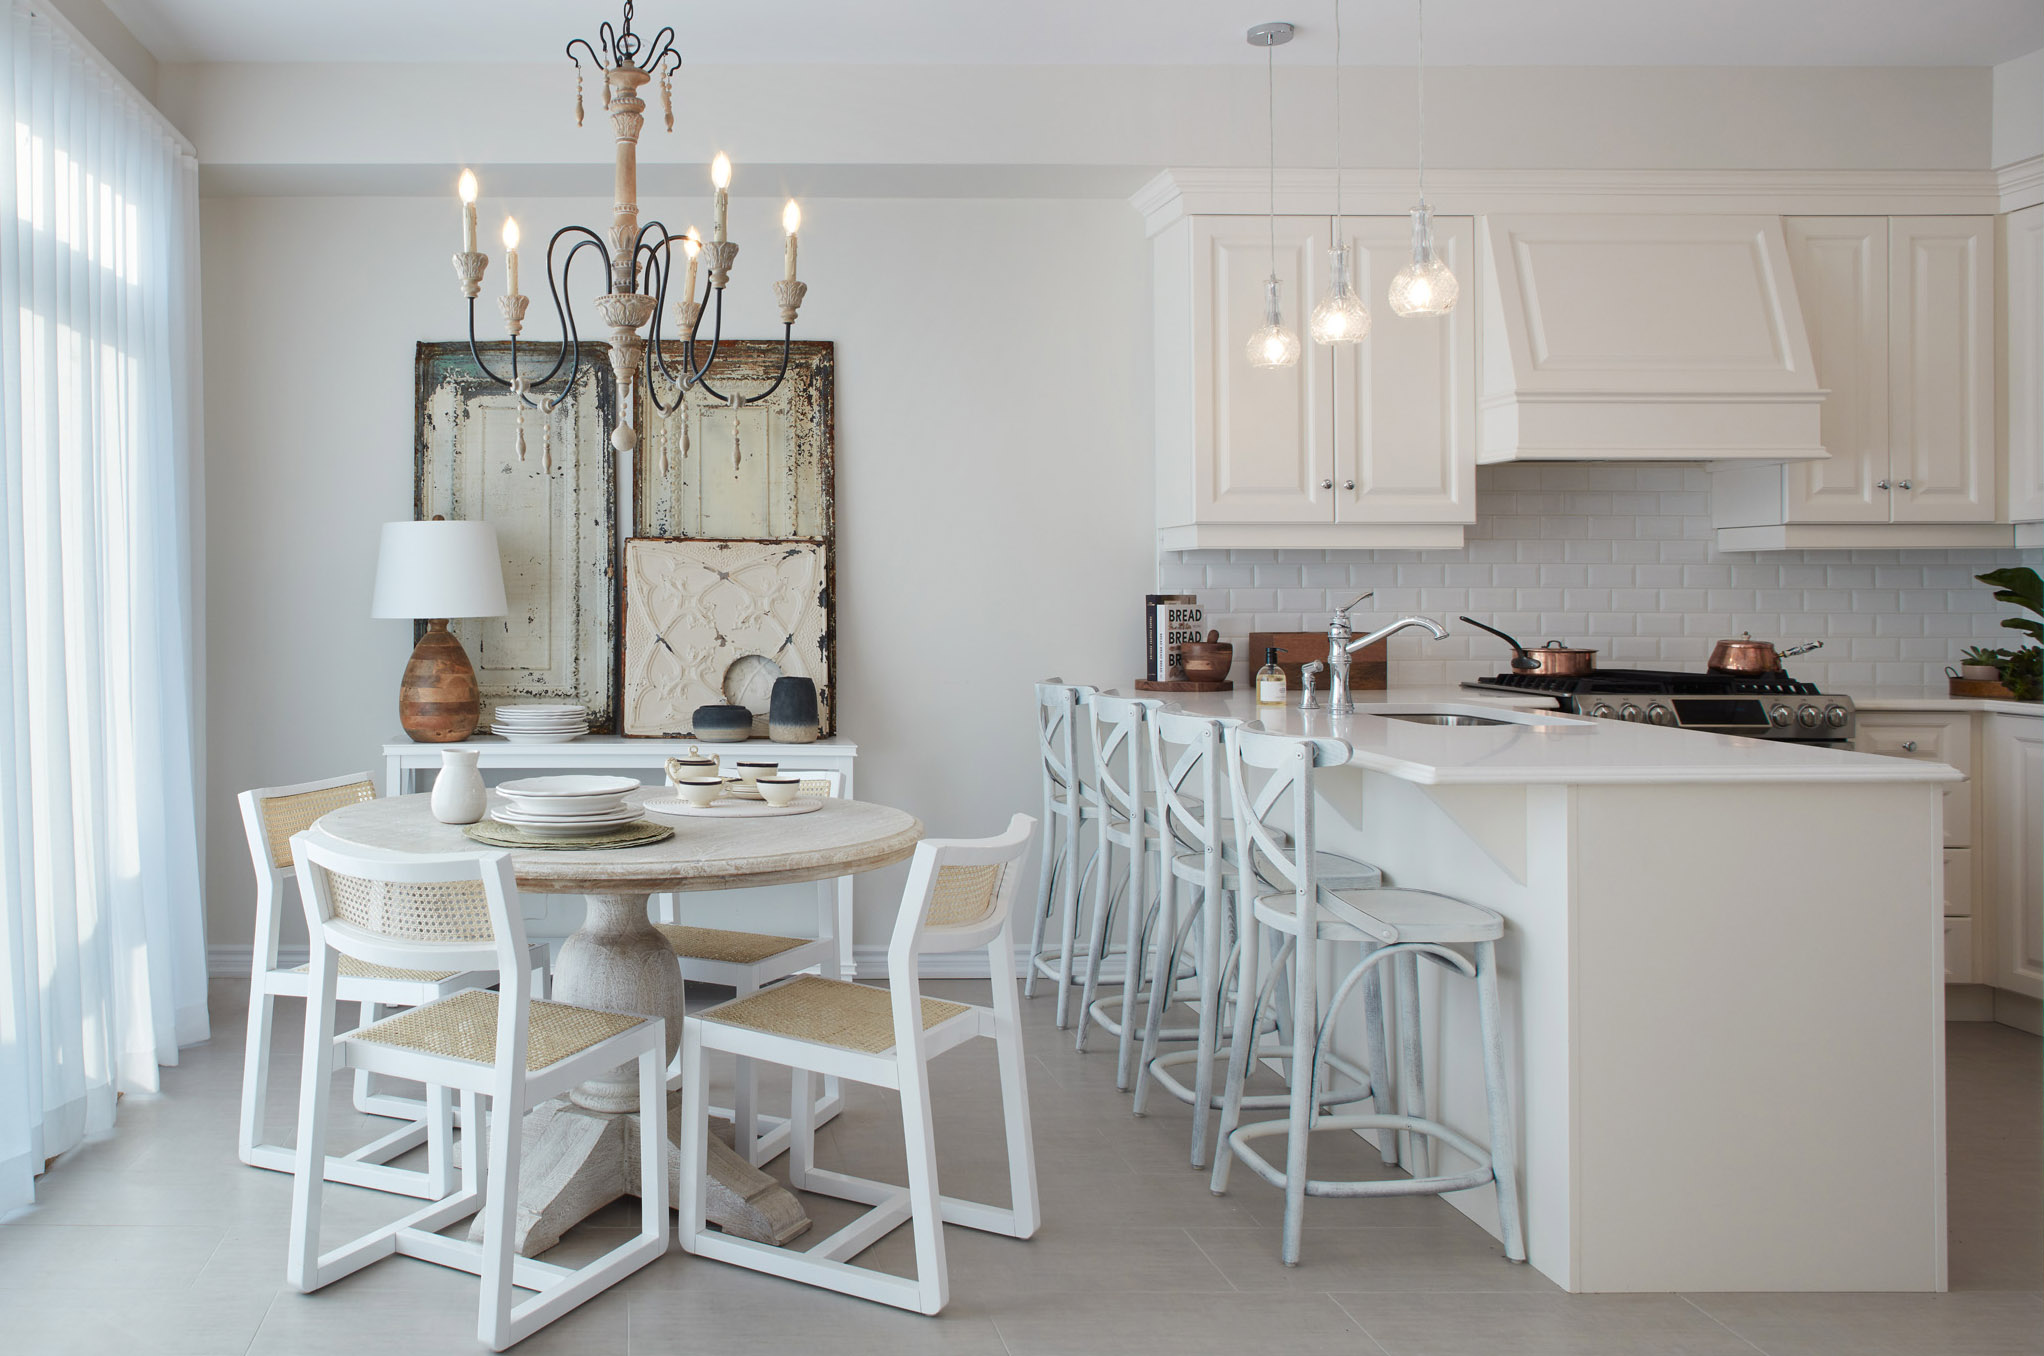 Shabby Chic kitchen with white furniture, white cabinets, and light wood floors